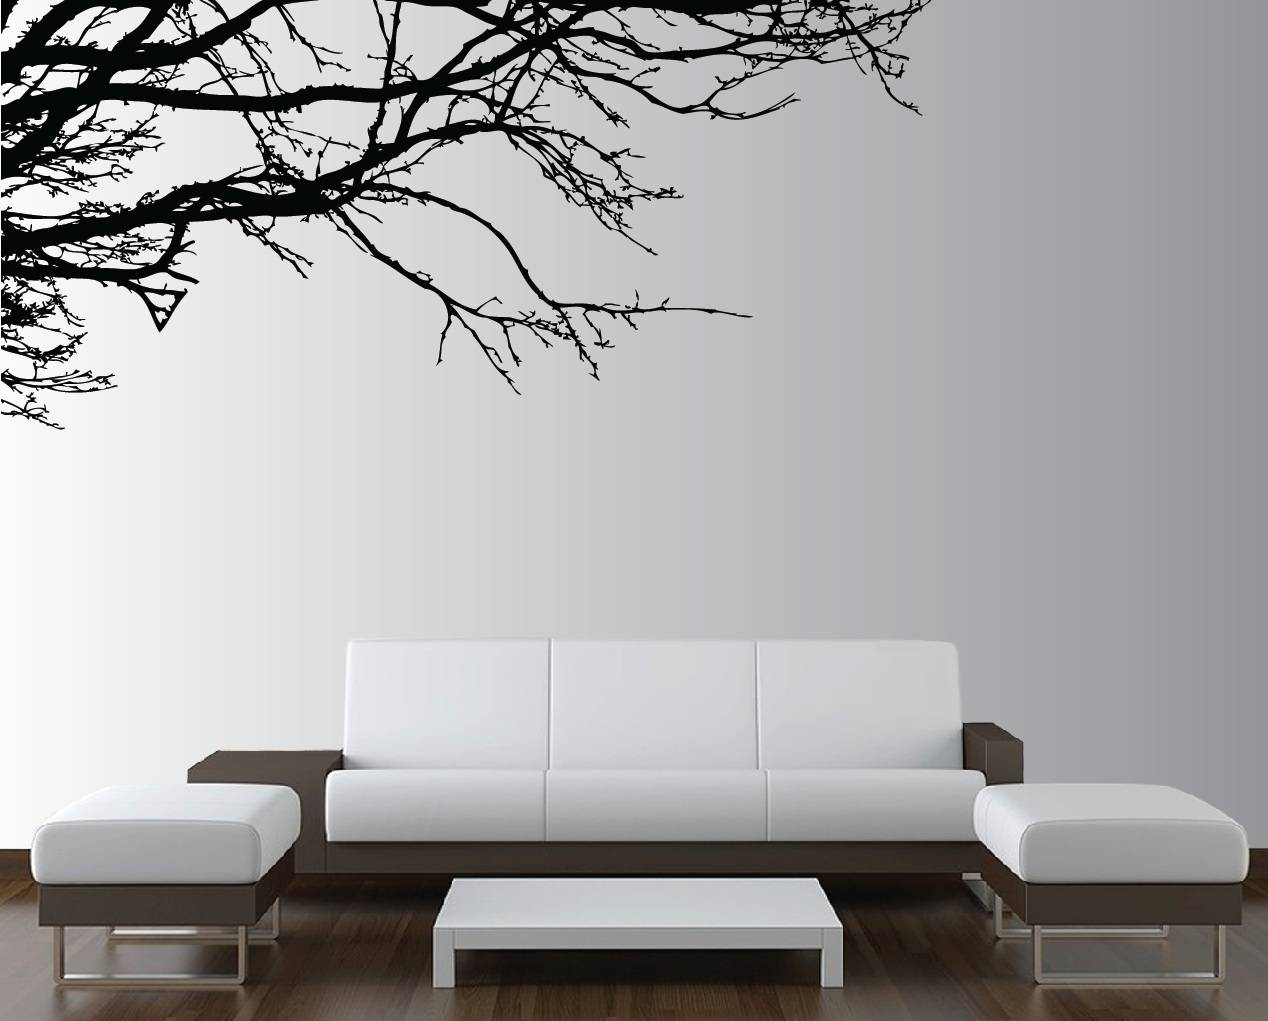 Large Wall Tree Nursery Decal Oak Branches #1130 – Innovativestencils Pertaining To Recent Oak Tree Wall Art (View 8 of 30)